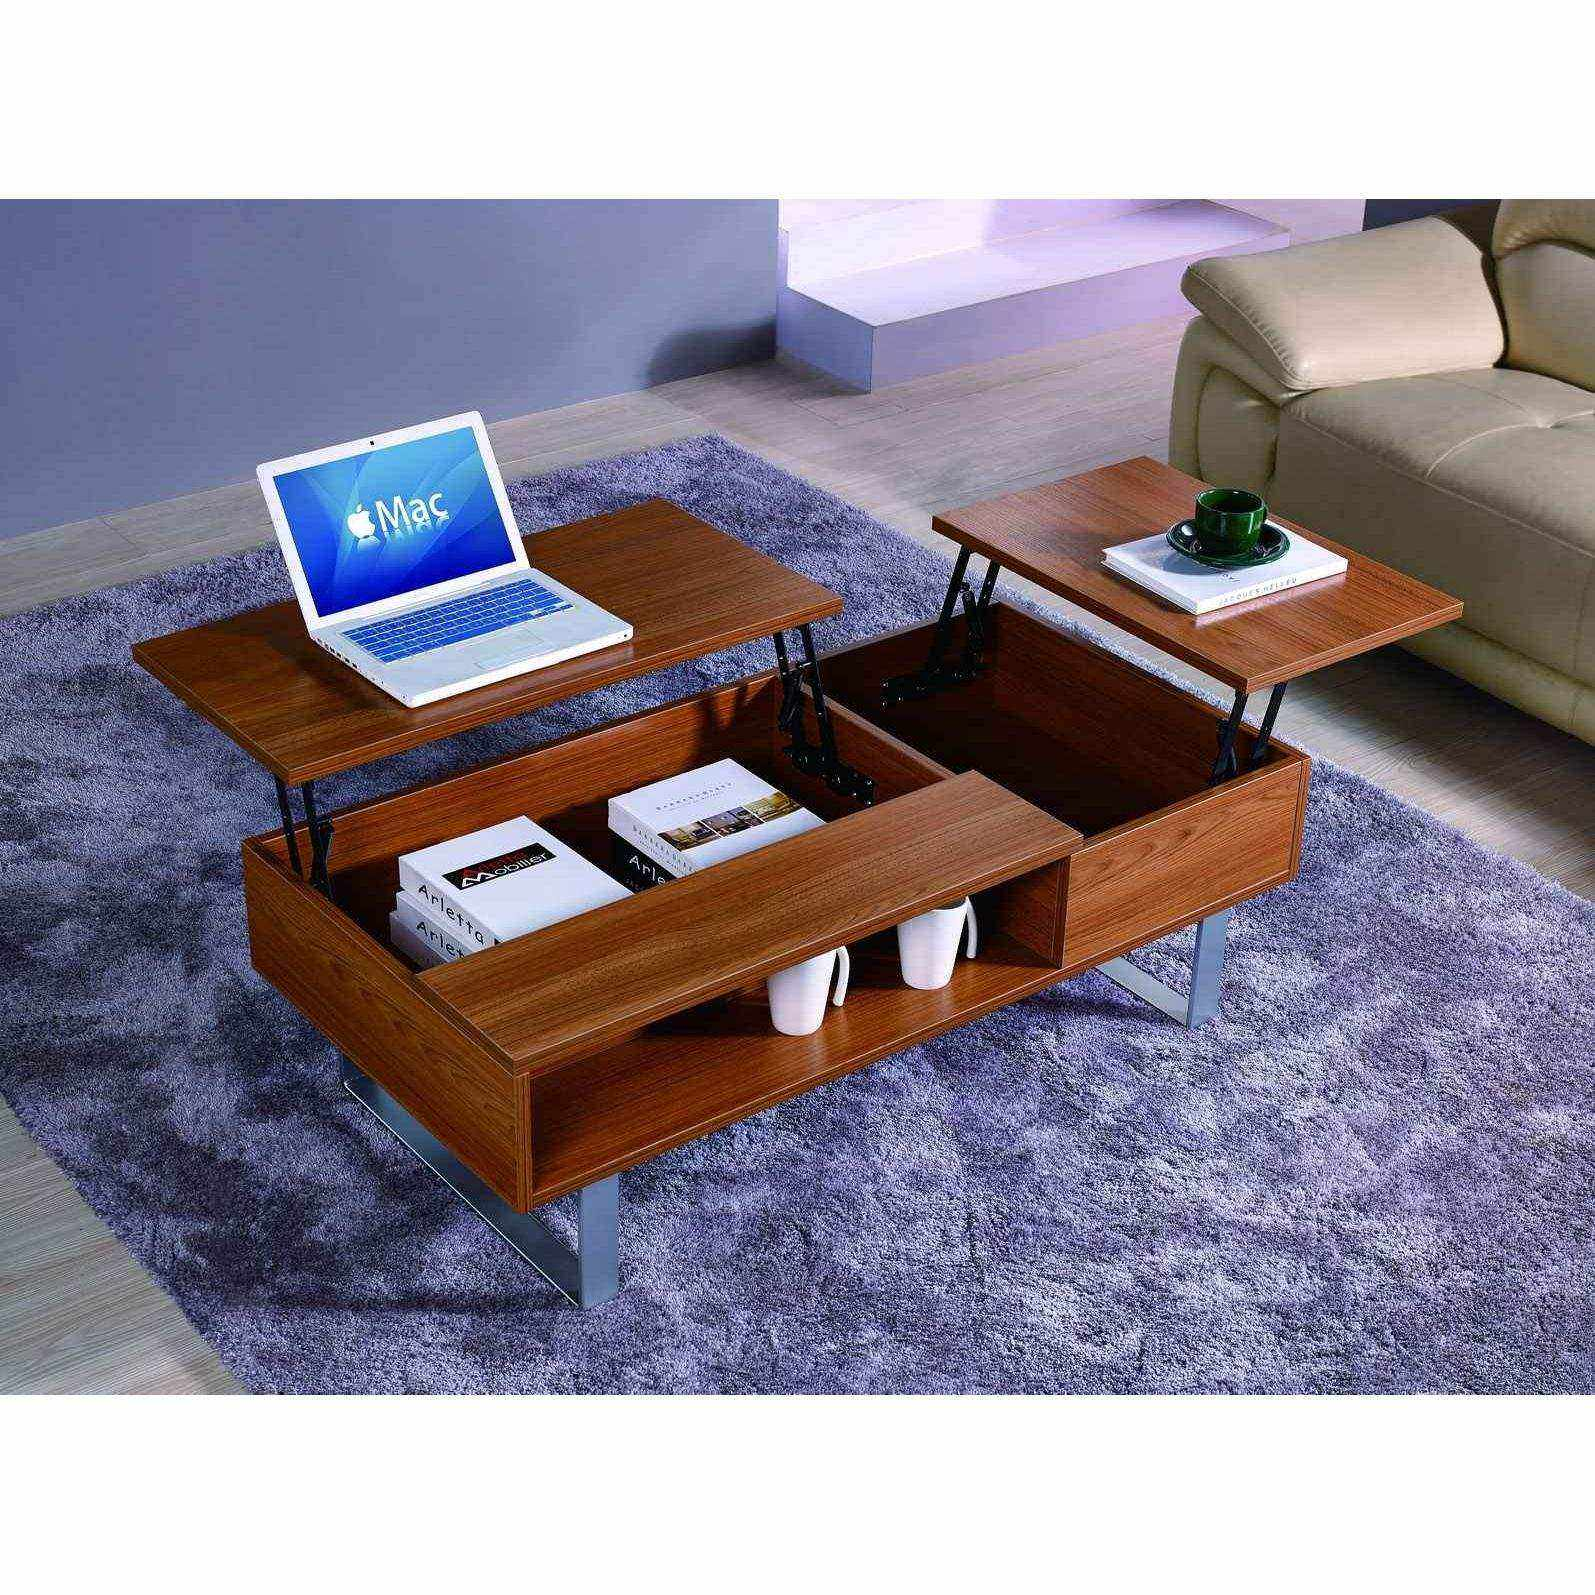 Table T L En Boi Simple Fenrez Com Sammlung Von Design  # Table Tele En Boi Simple